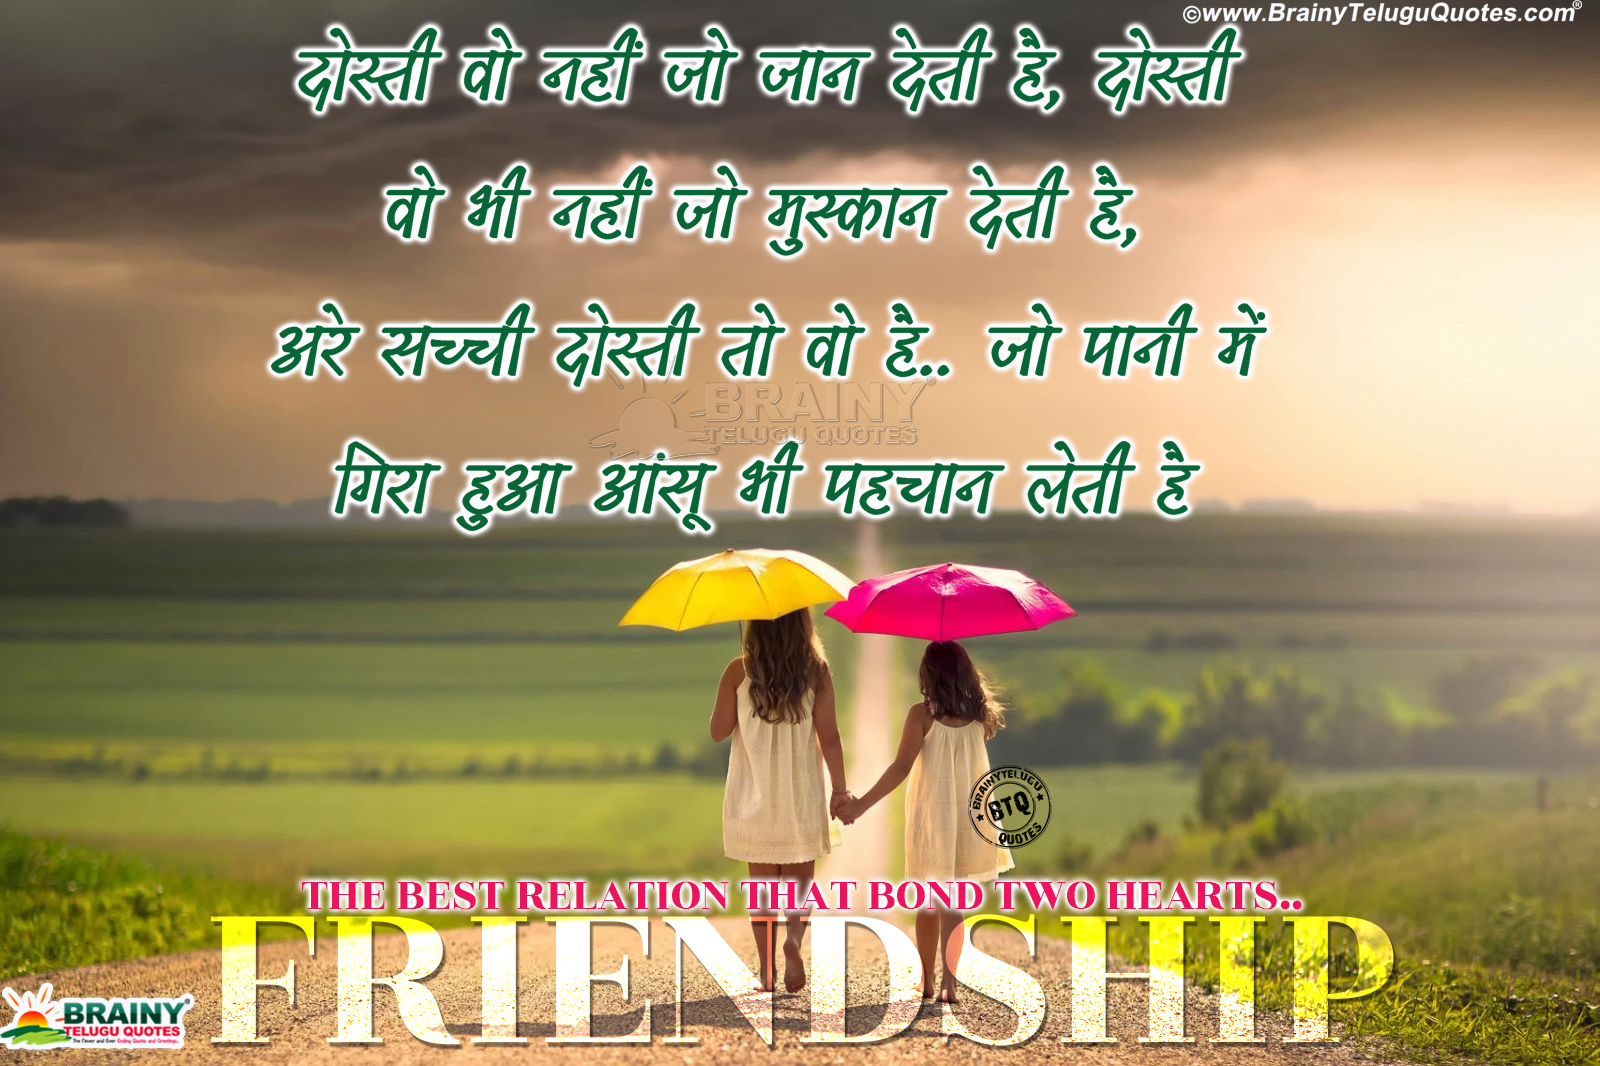 Quotes About Friendship With Images Heart Touching Friendship Quotes Hd Wallpapers In Hindi